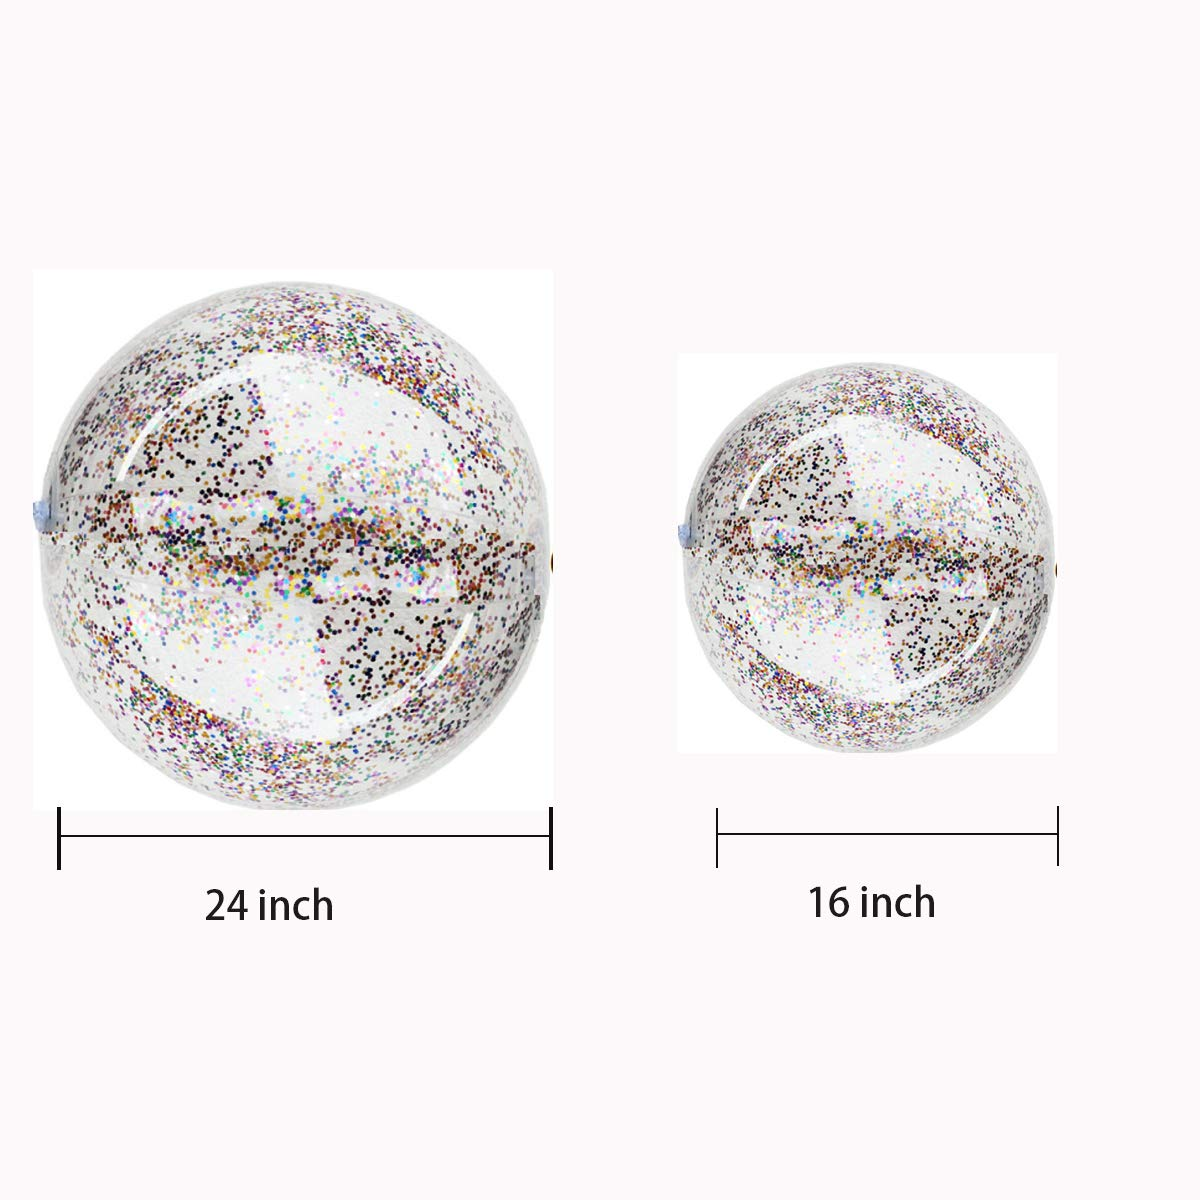 16 Inch-1 Pieces, 24 Inch-1 Piece Summer Water Fun Play Beach Ball Pool Ball Party SBYURE 2 Pcs Shiny Glitter Beach Ball Confetti Beach Ball Inflated Party Ball for Summer Beach Favor